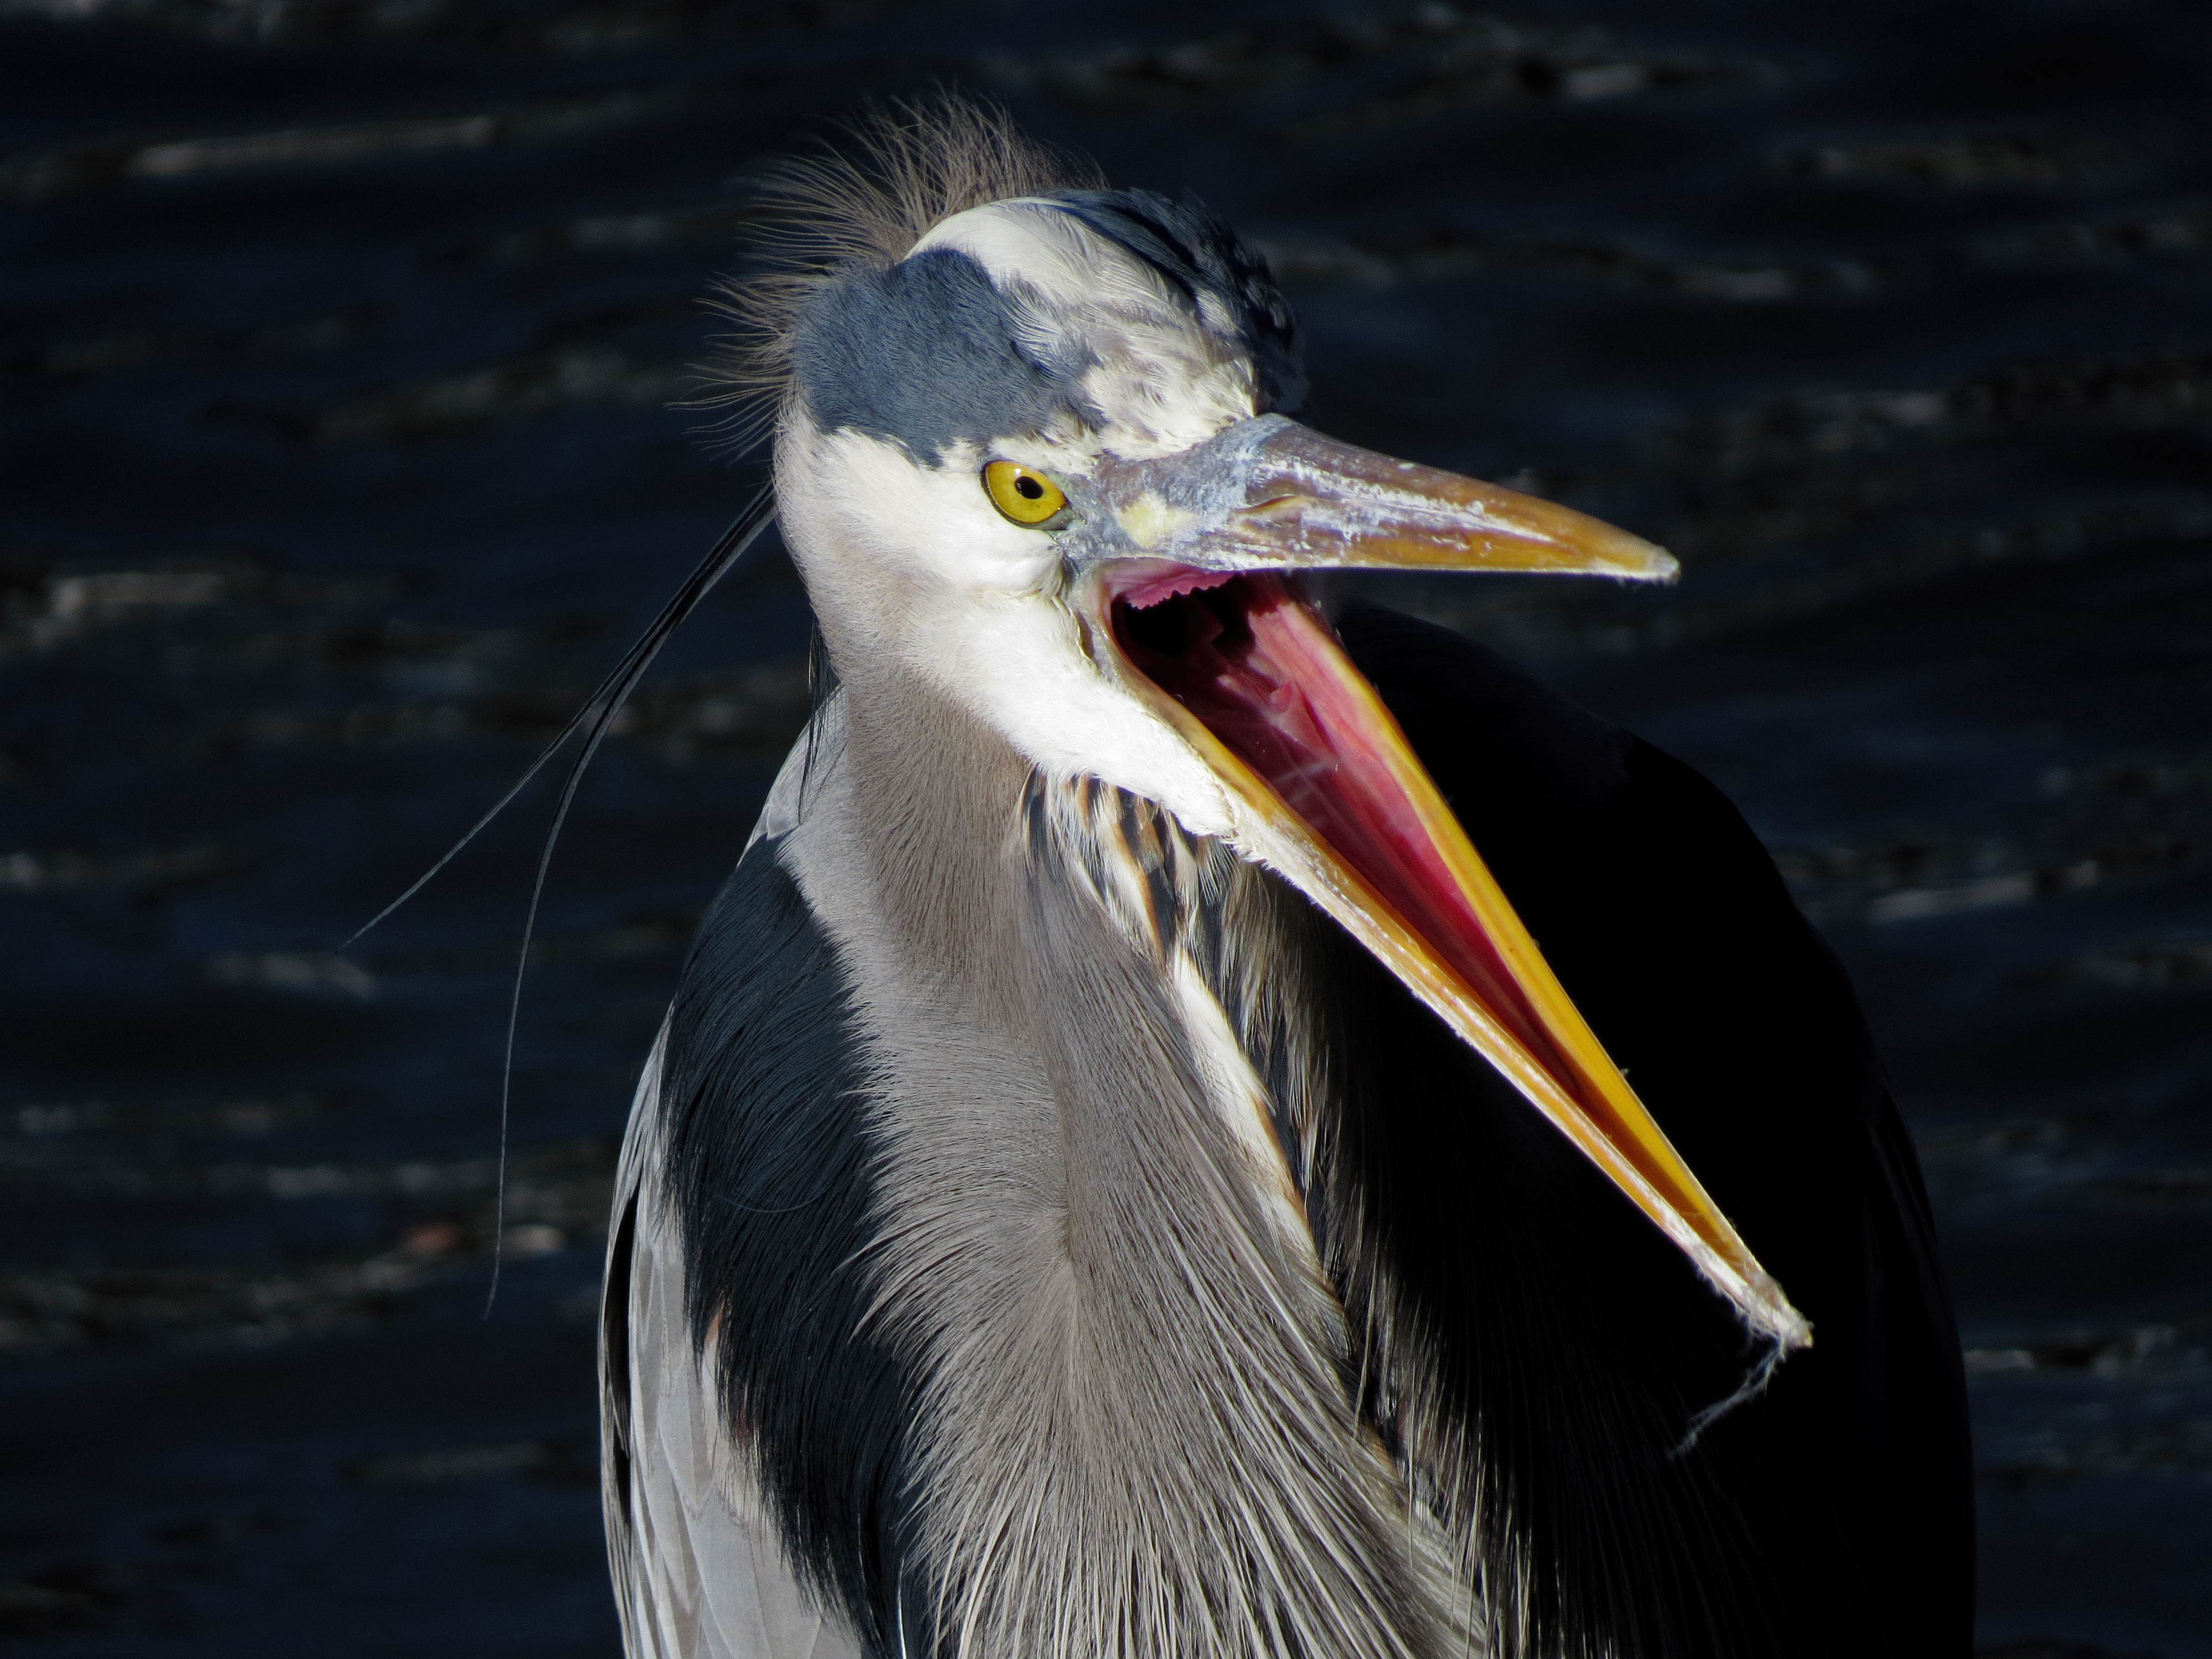 Great Blue Heron Tony Britton 2014 (6).jpg